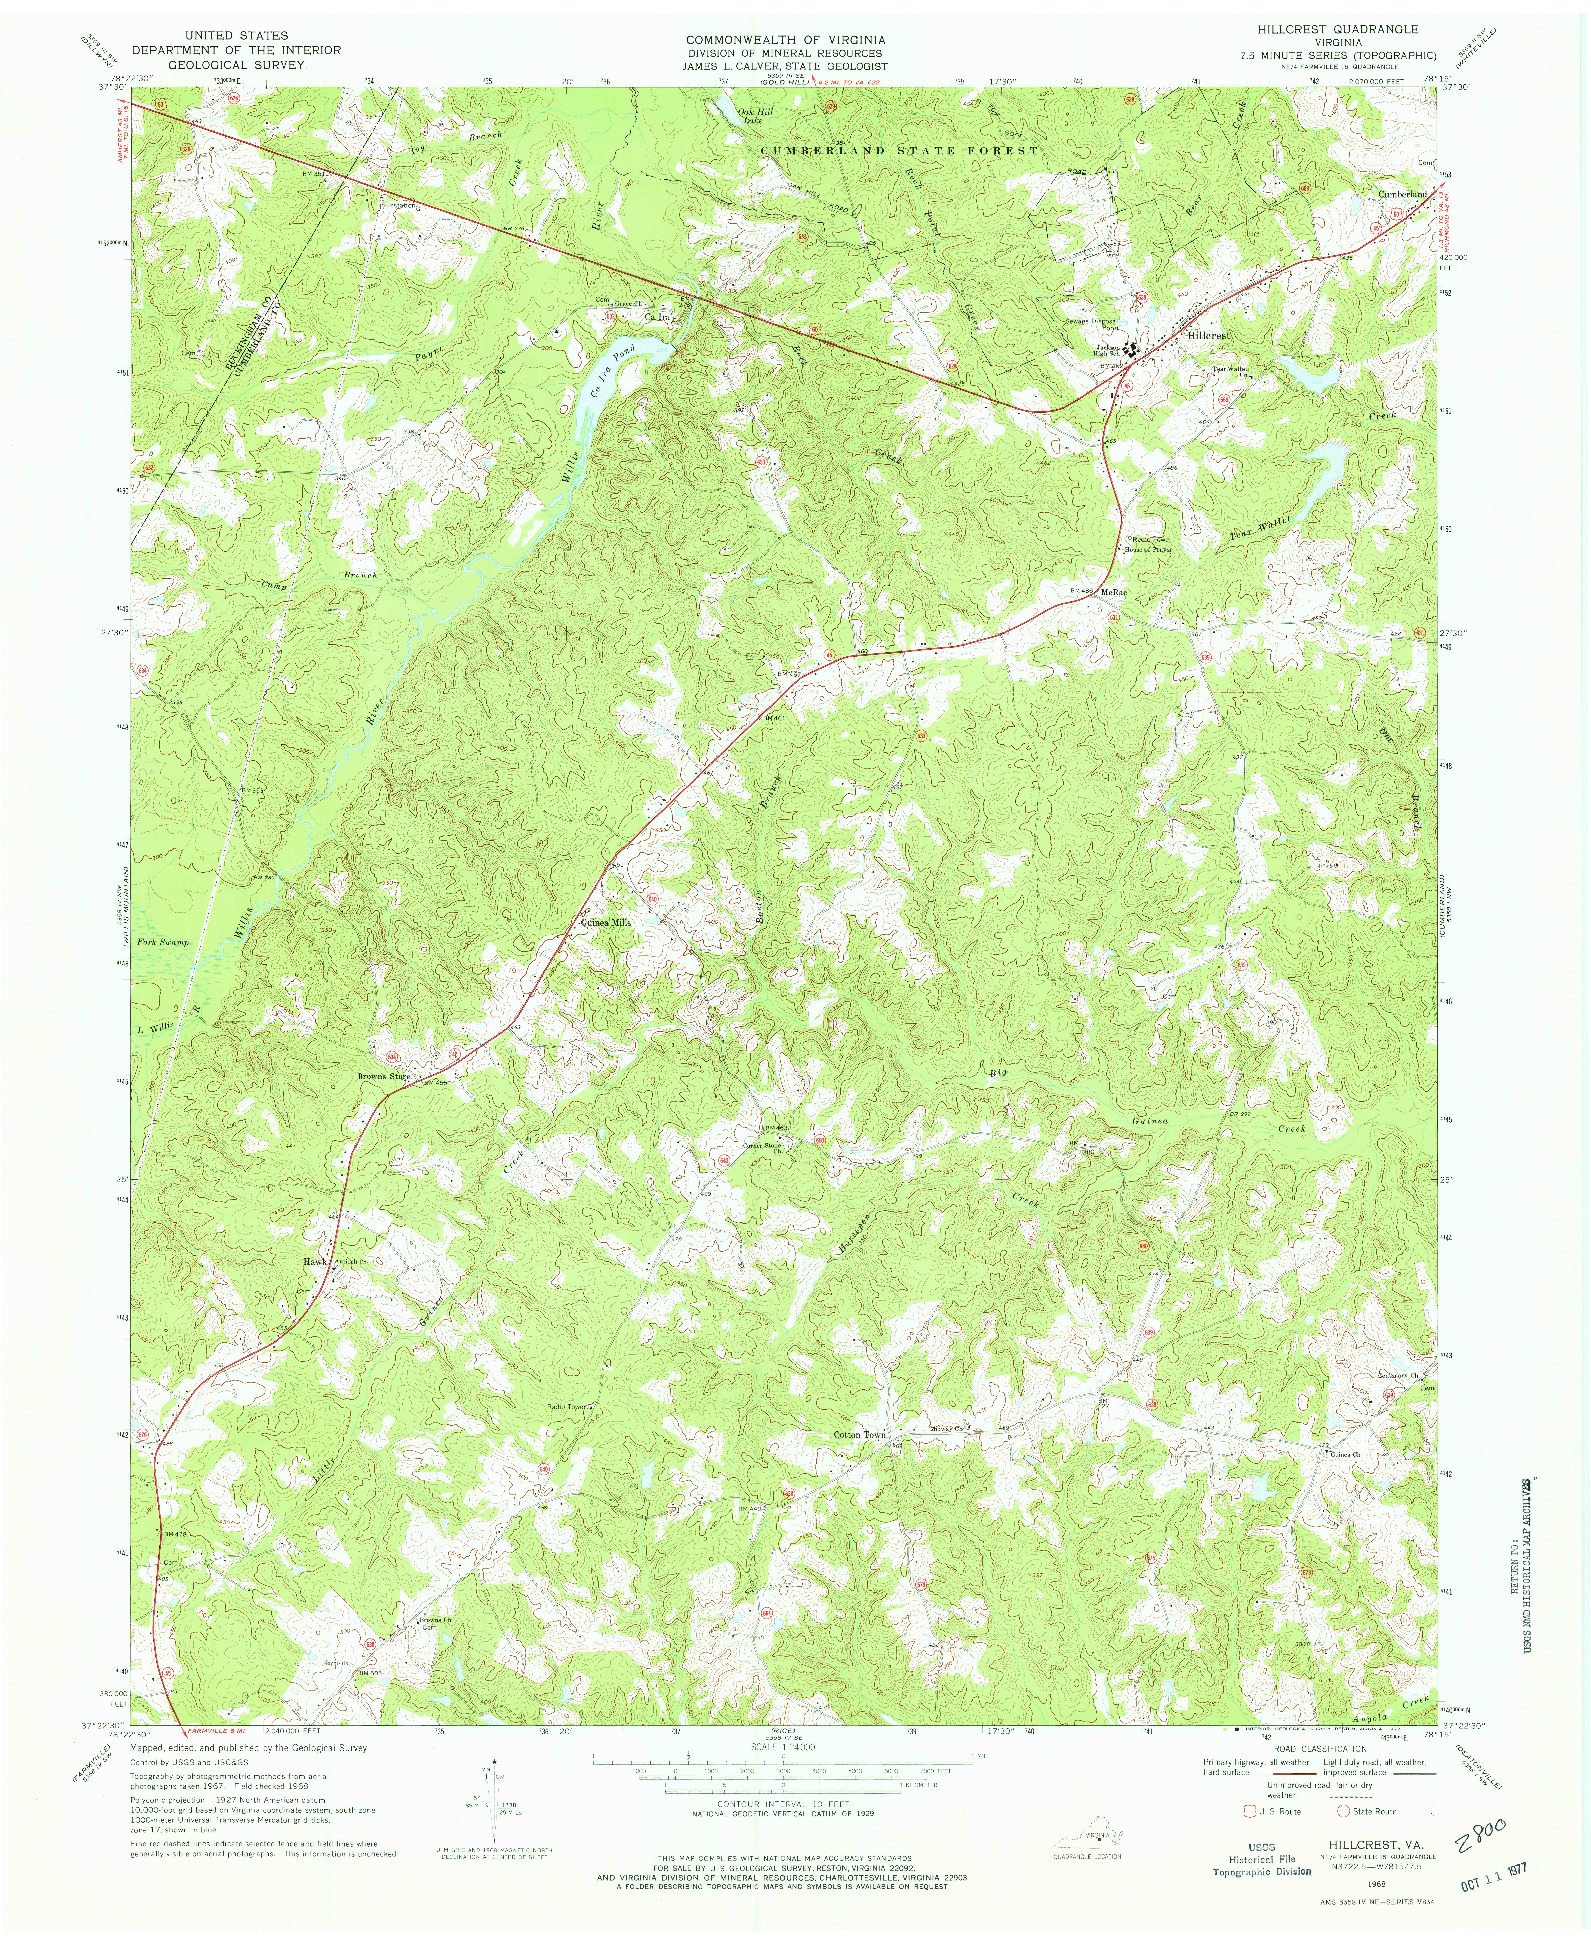 USGS 1:24000-SCALE QUADRANGLE FOR HILLCREST, VA 1968